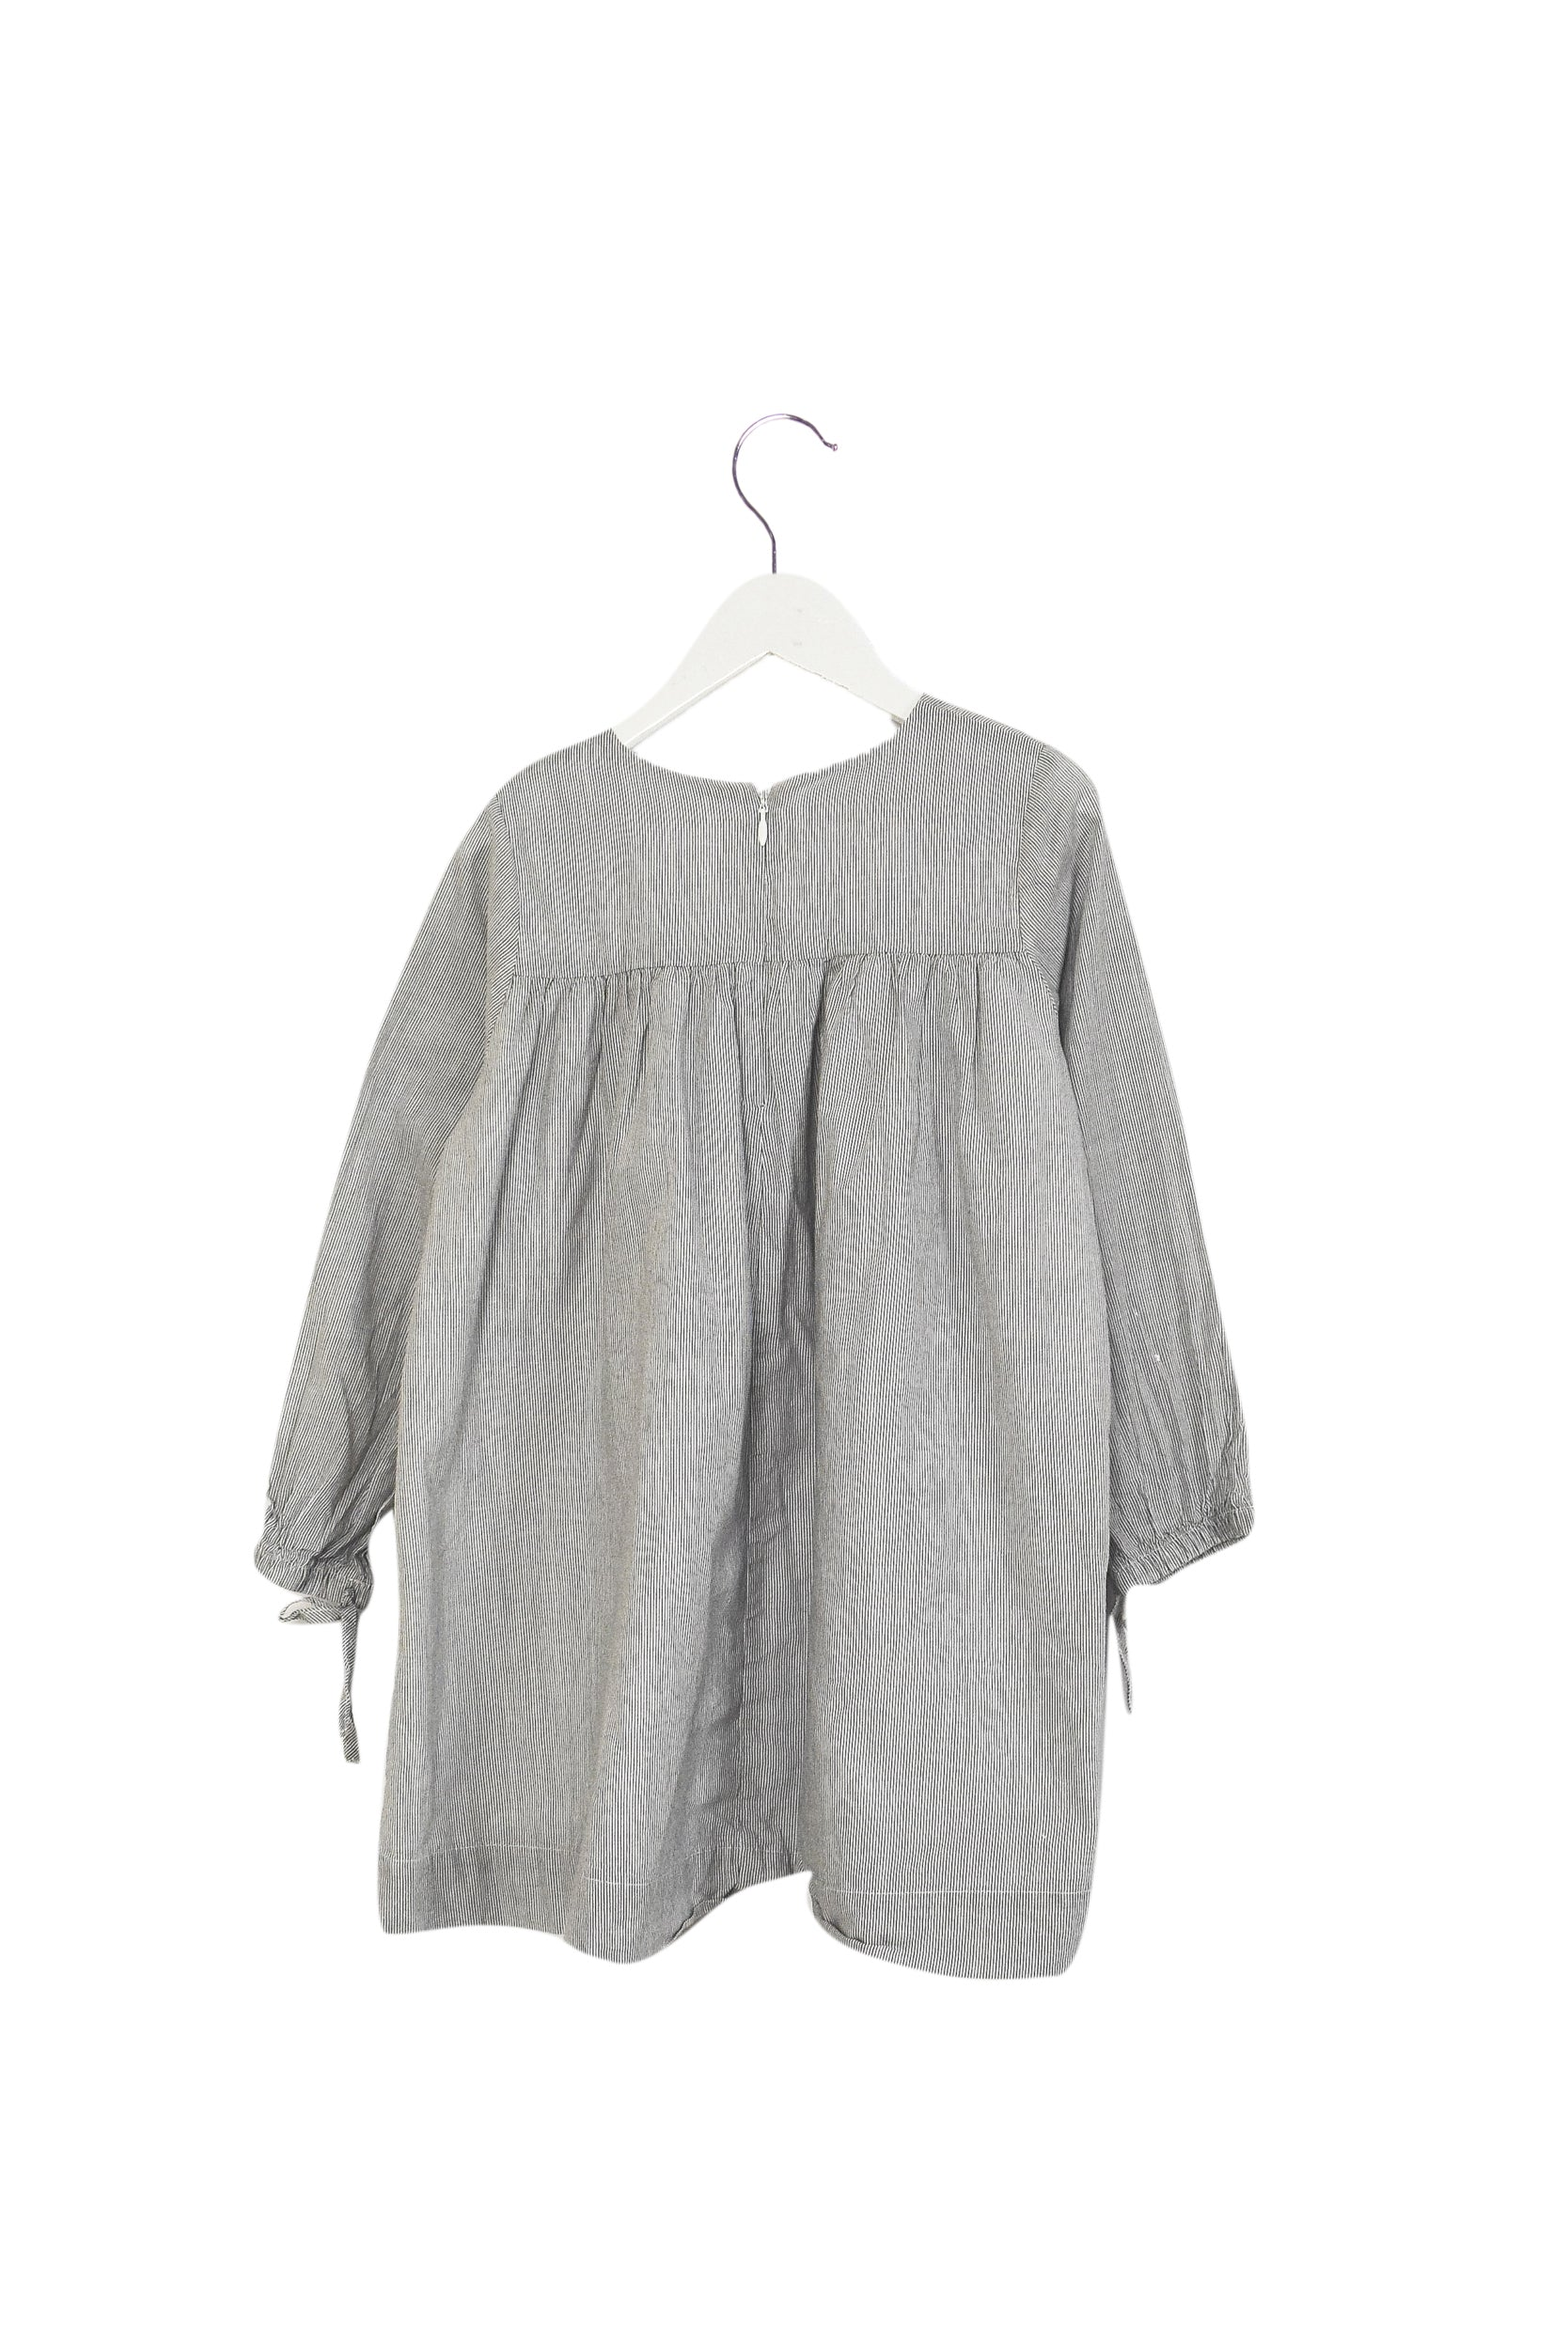 Long Sleeve Dress 5T at Retykle